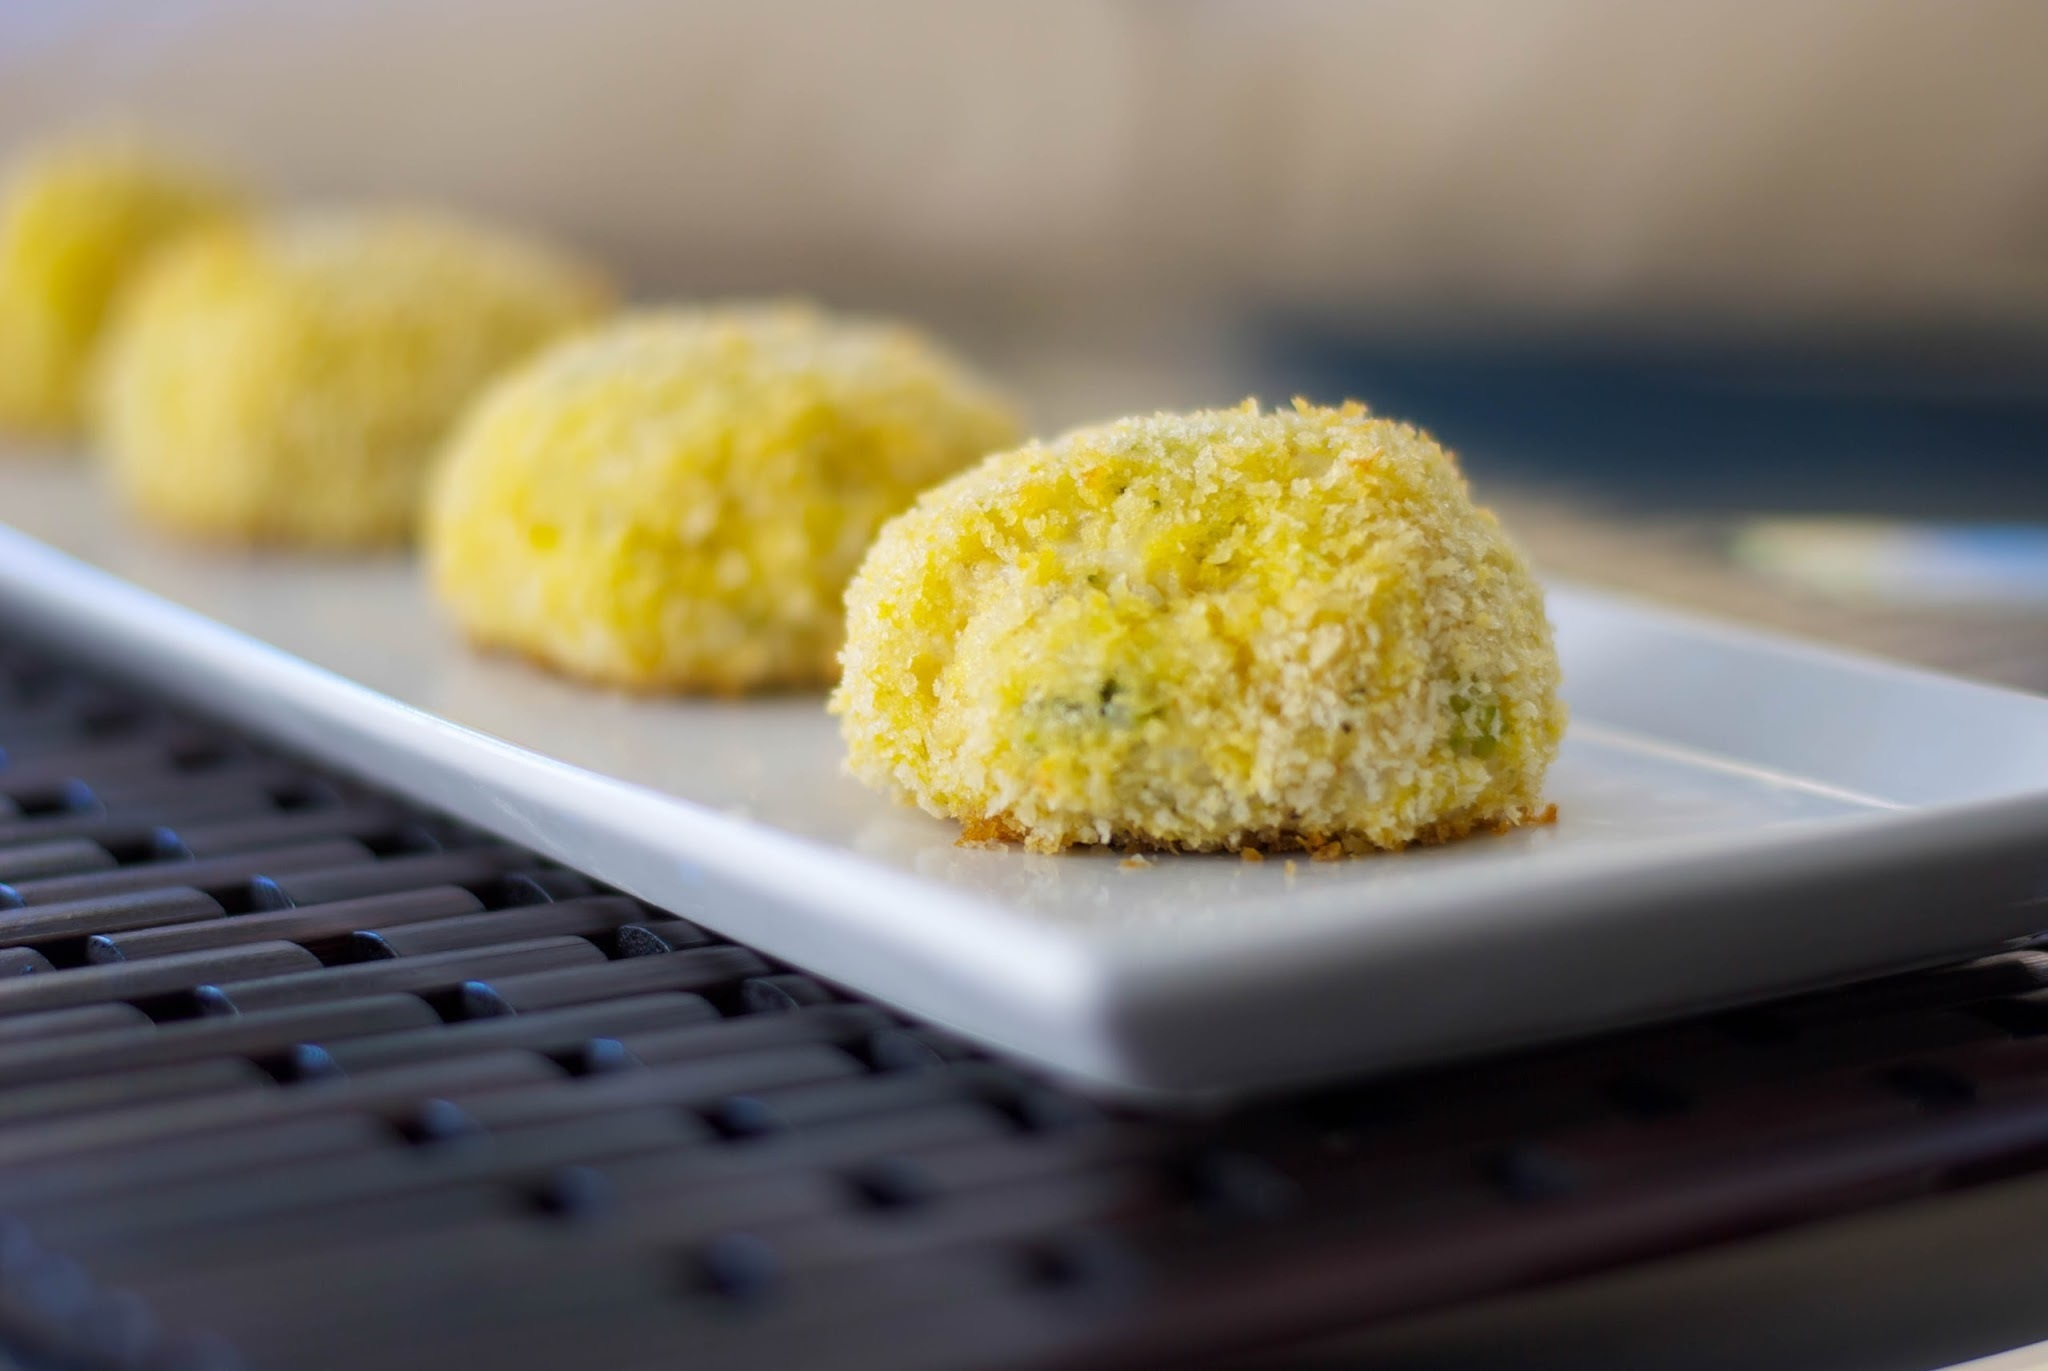 Baked Broccoli and Cheese Arancini (Rice Balls)